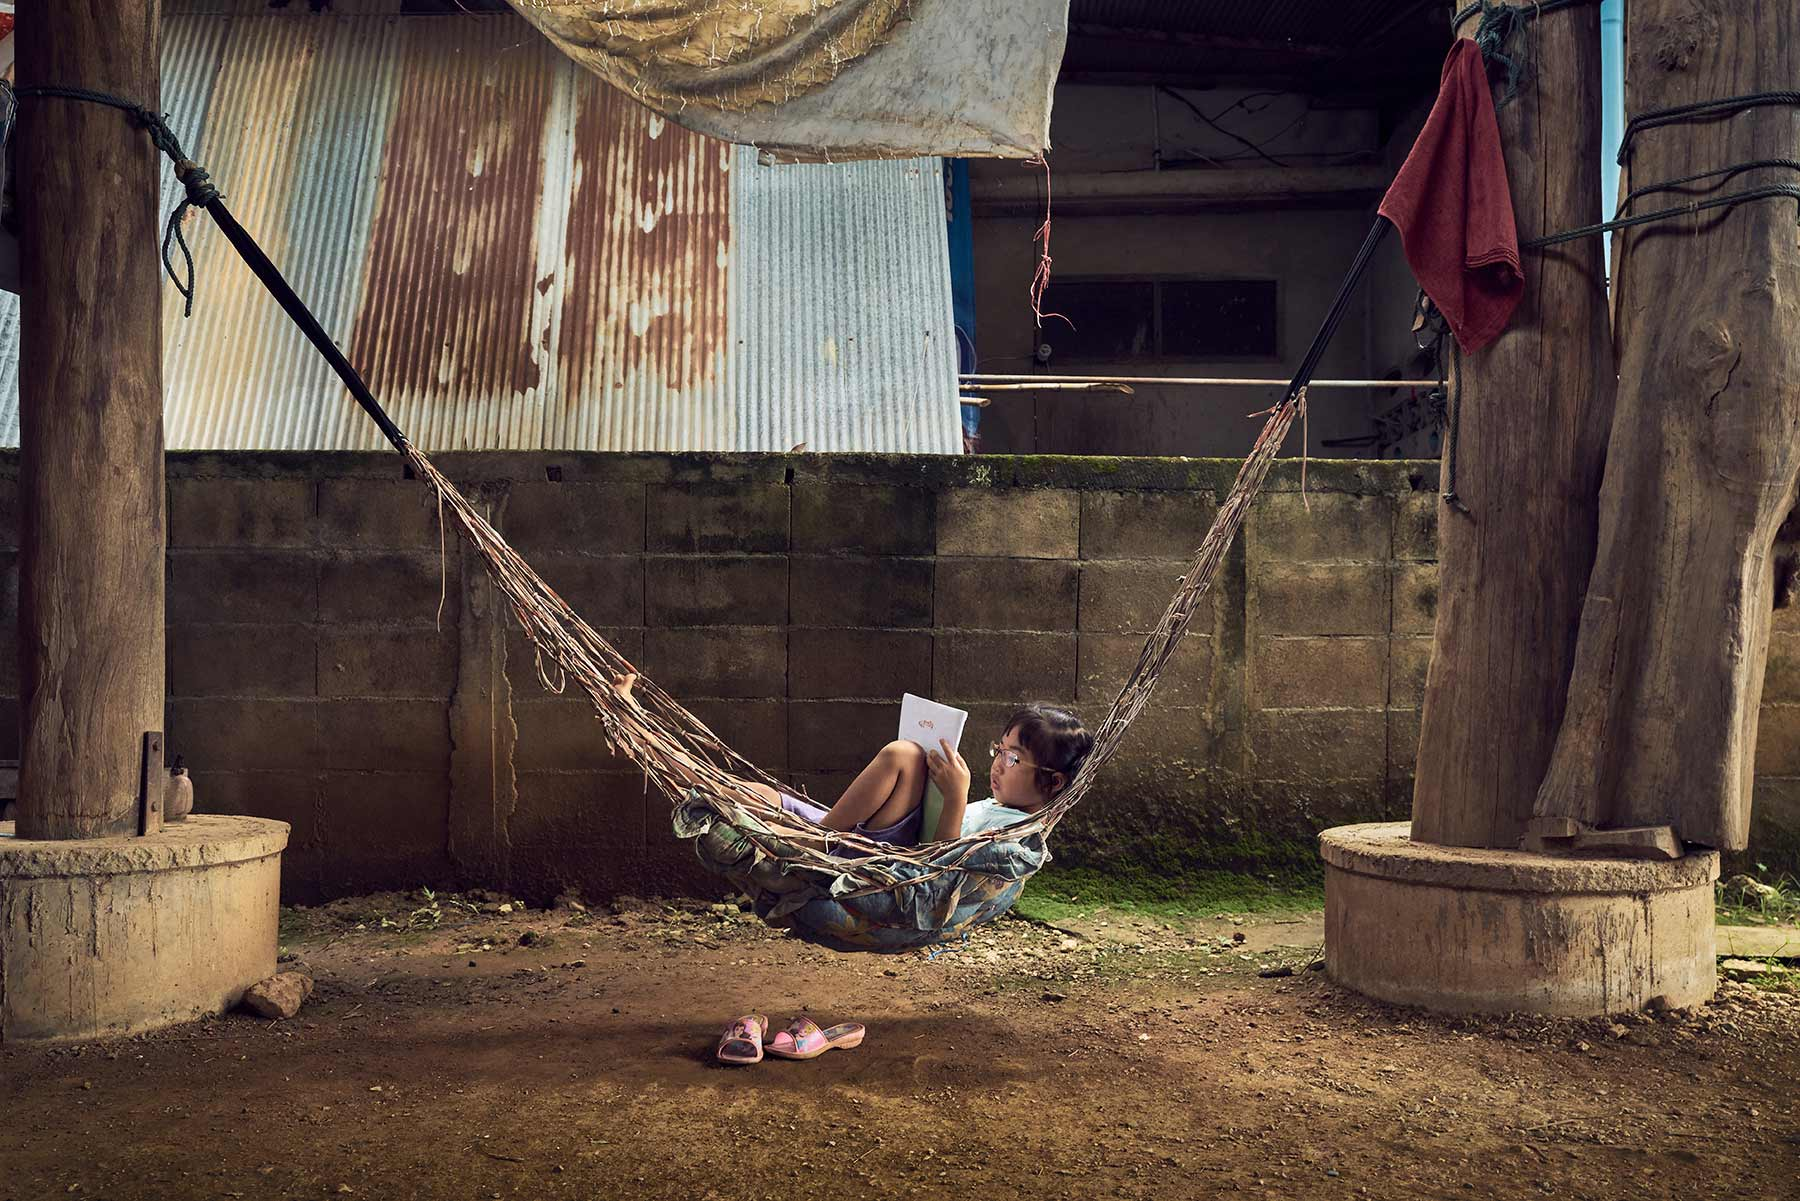 A-portrait-of-a-young-boy-relaxing-on-a-hammock-in-a-large-room-with-dirt-floors